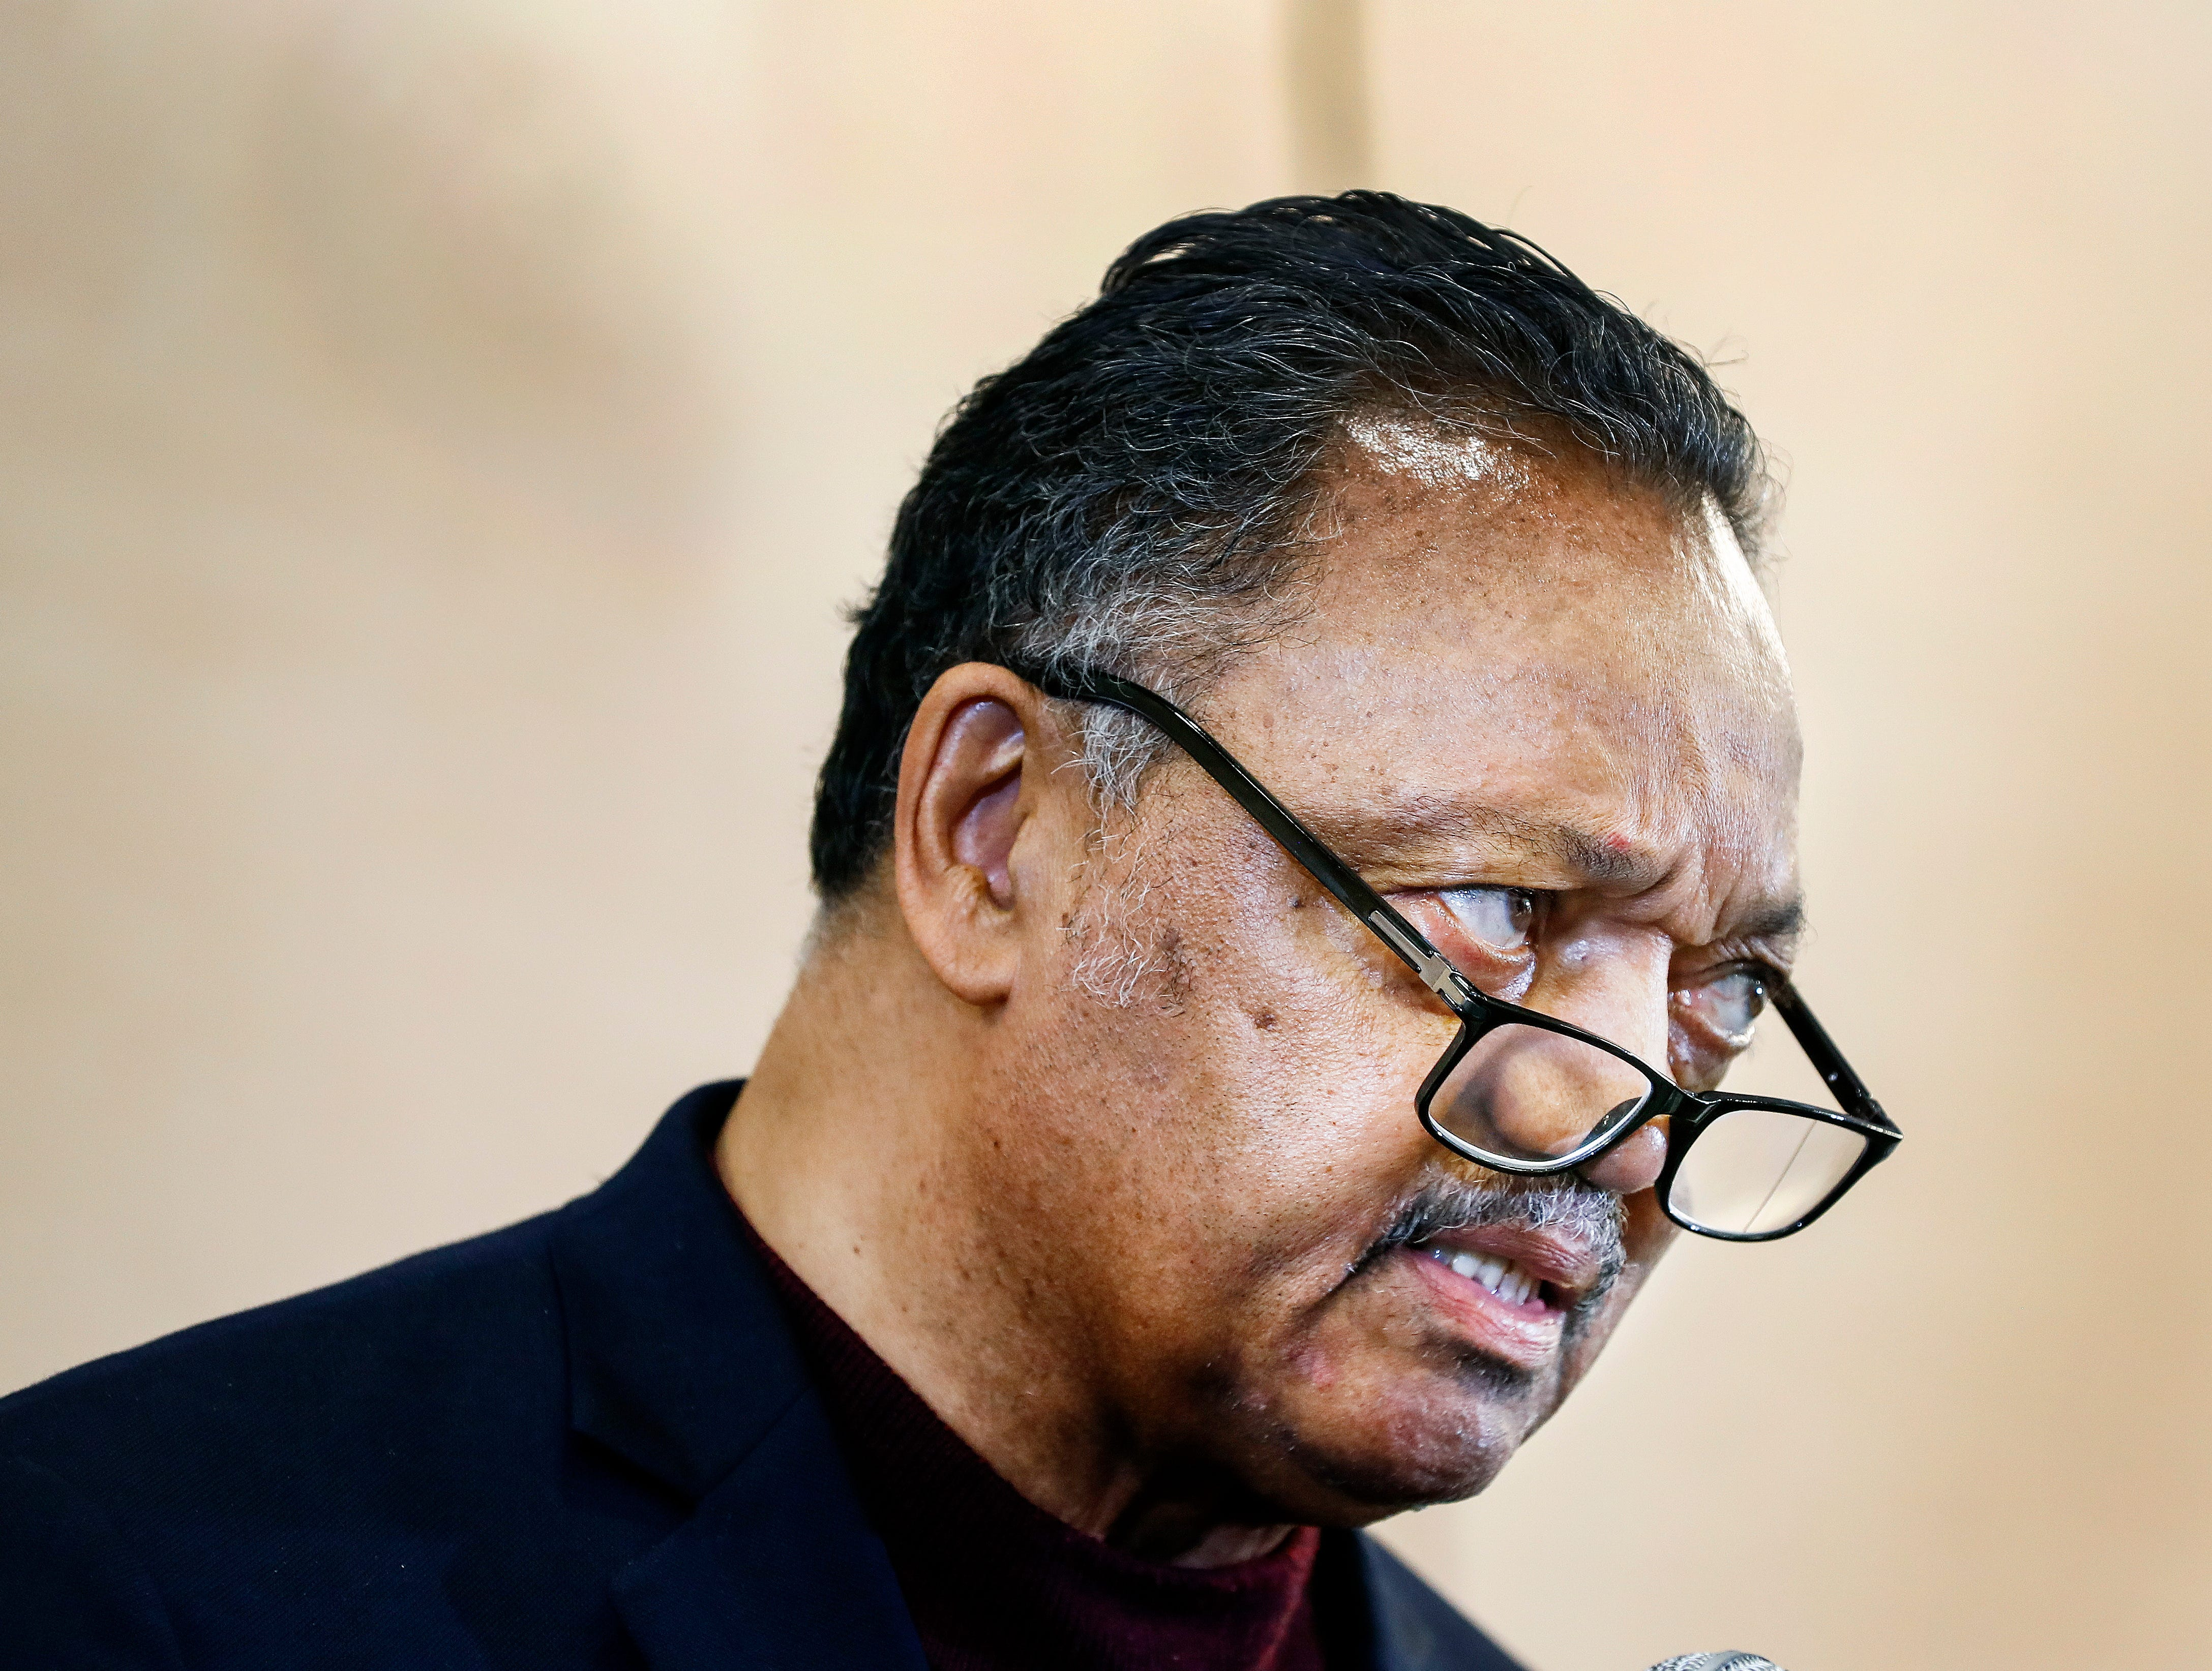 Rev. Jesse Jackson speaks during a commemoration event at the National Civil Rights Museum April 4, 2019, on the 51st anniversary of Dr. Martin Luther King, Jr.'s assassination.